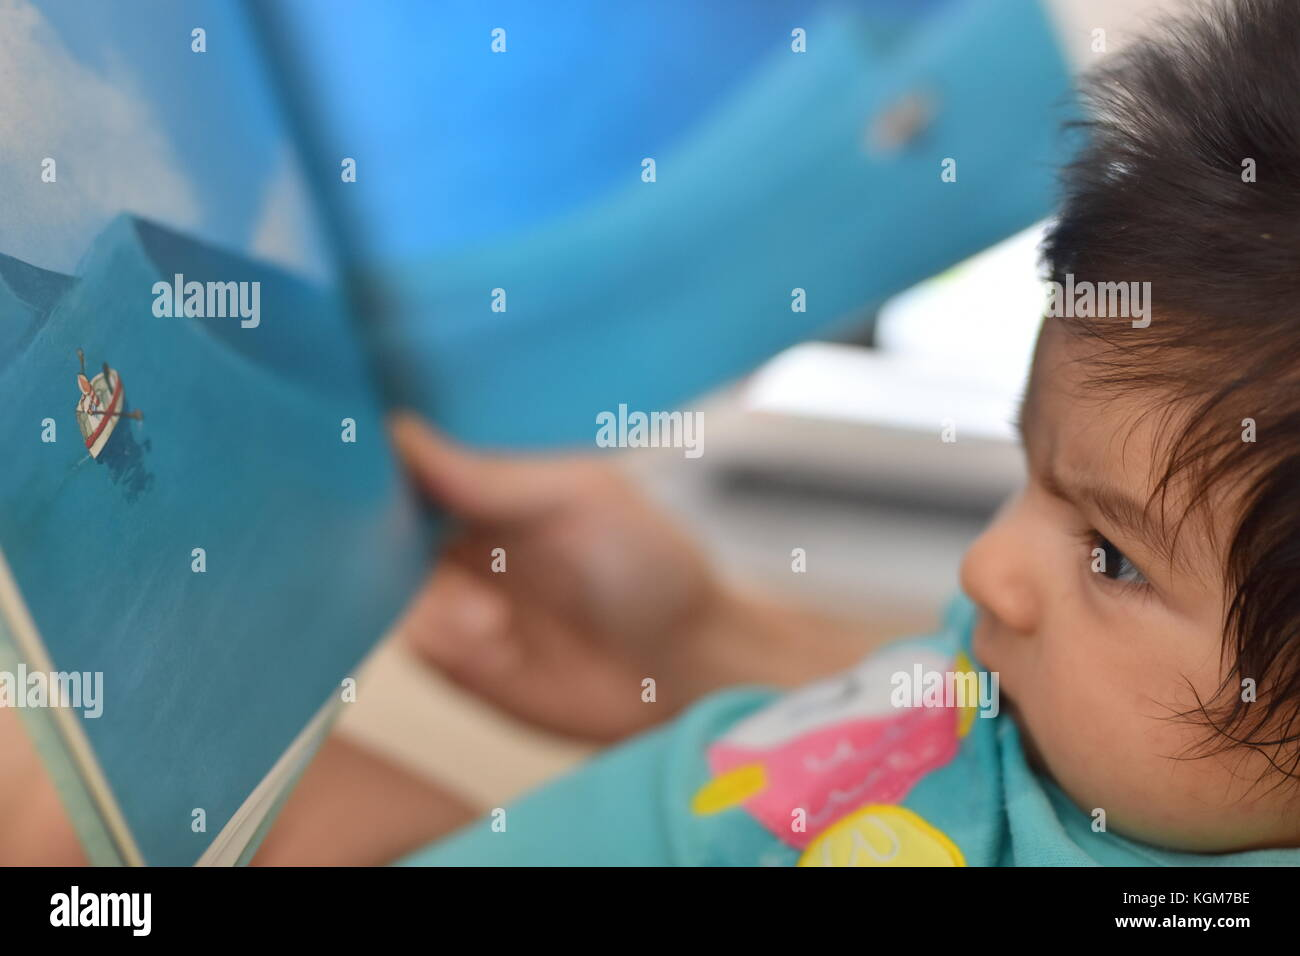 Newborn baby attentively reading children's book with illustrations - Stock Image